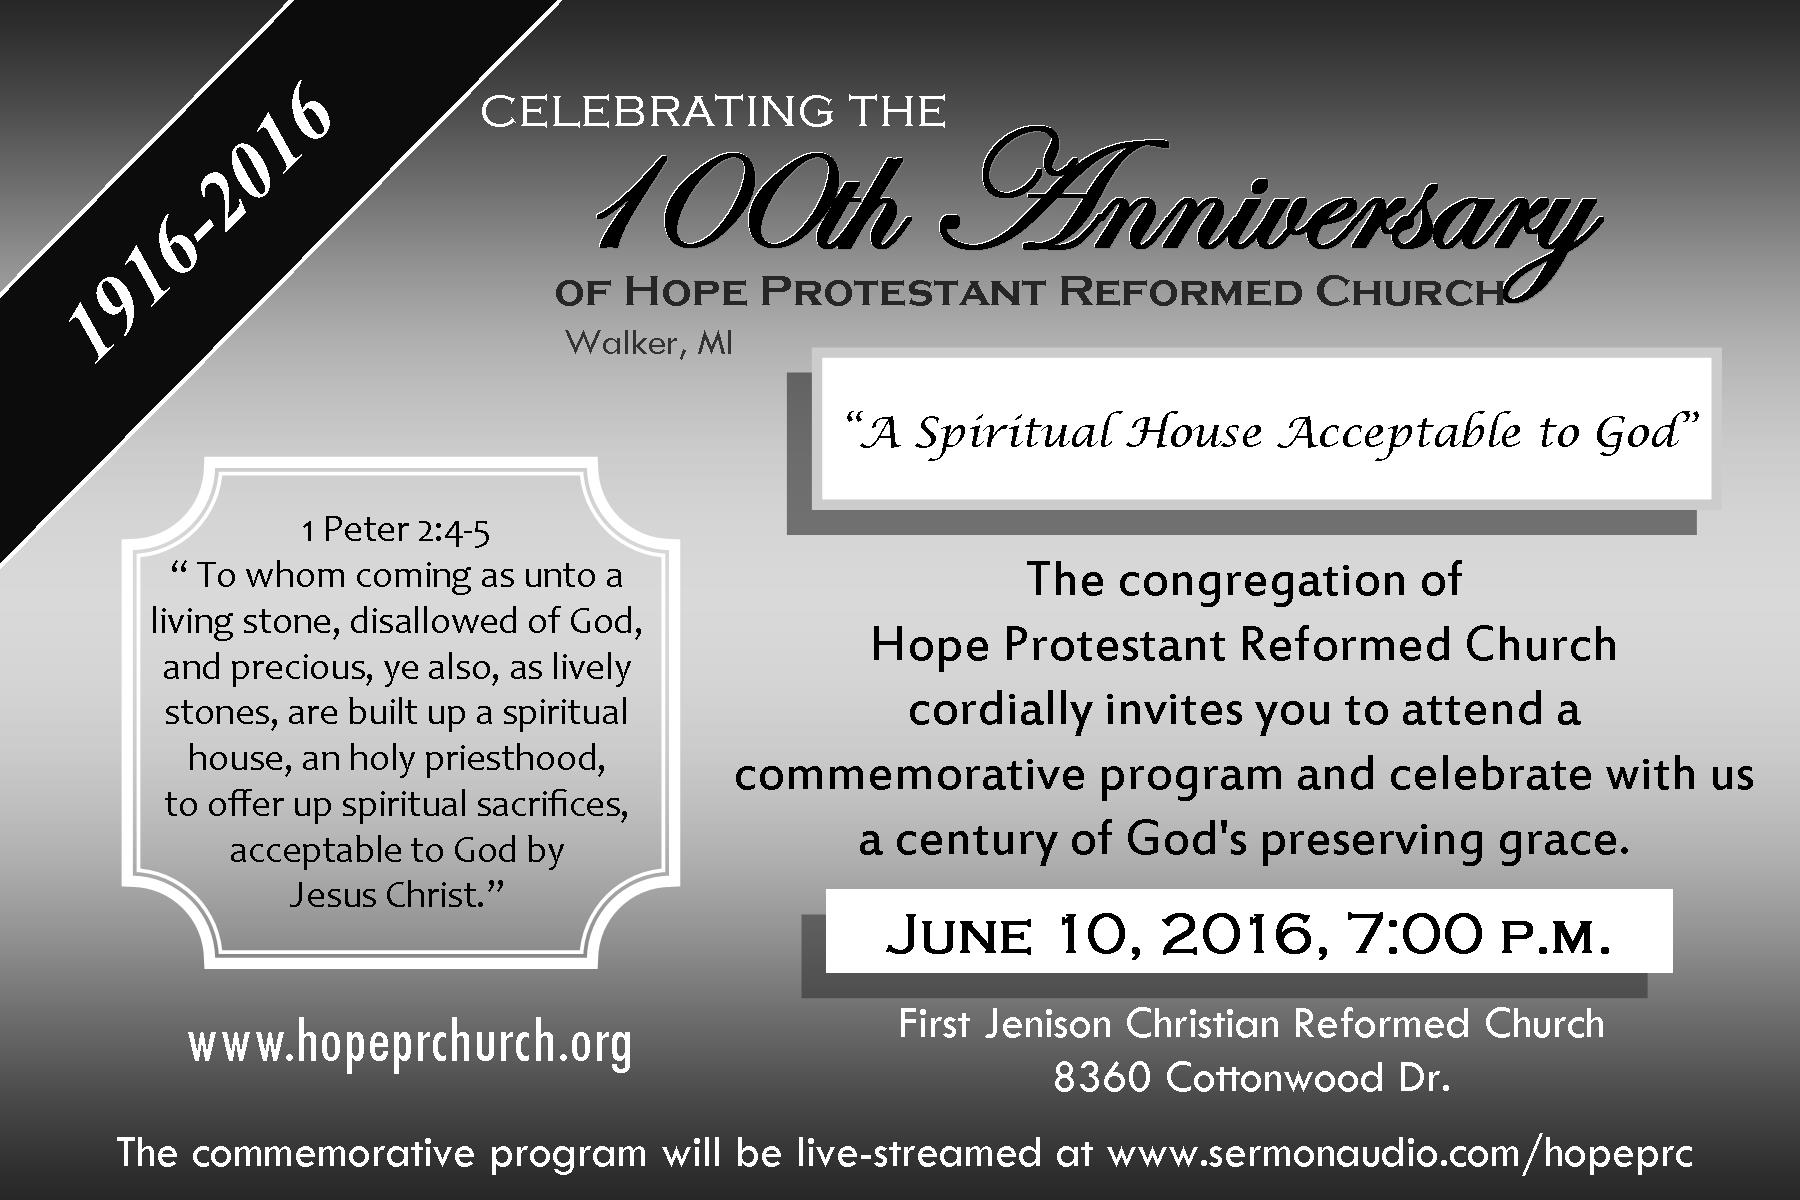 HopePRC 100th Anniv advert 2016